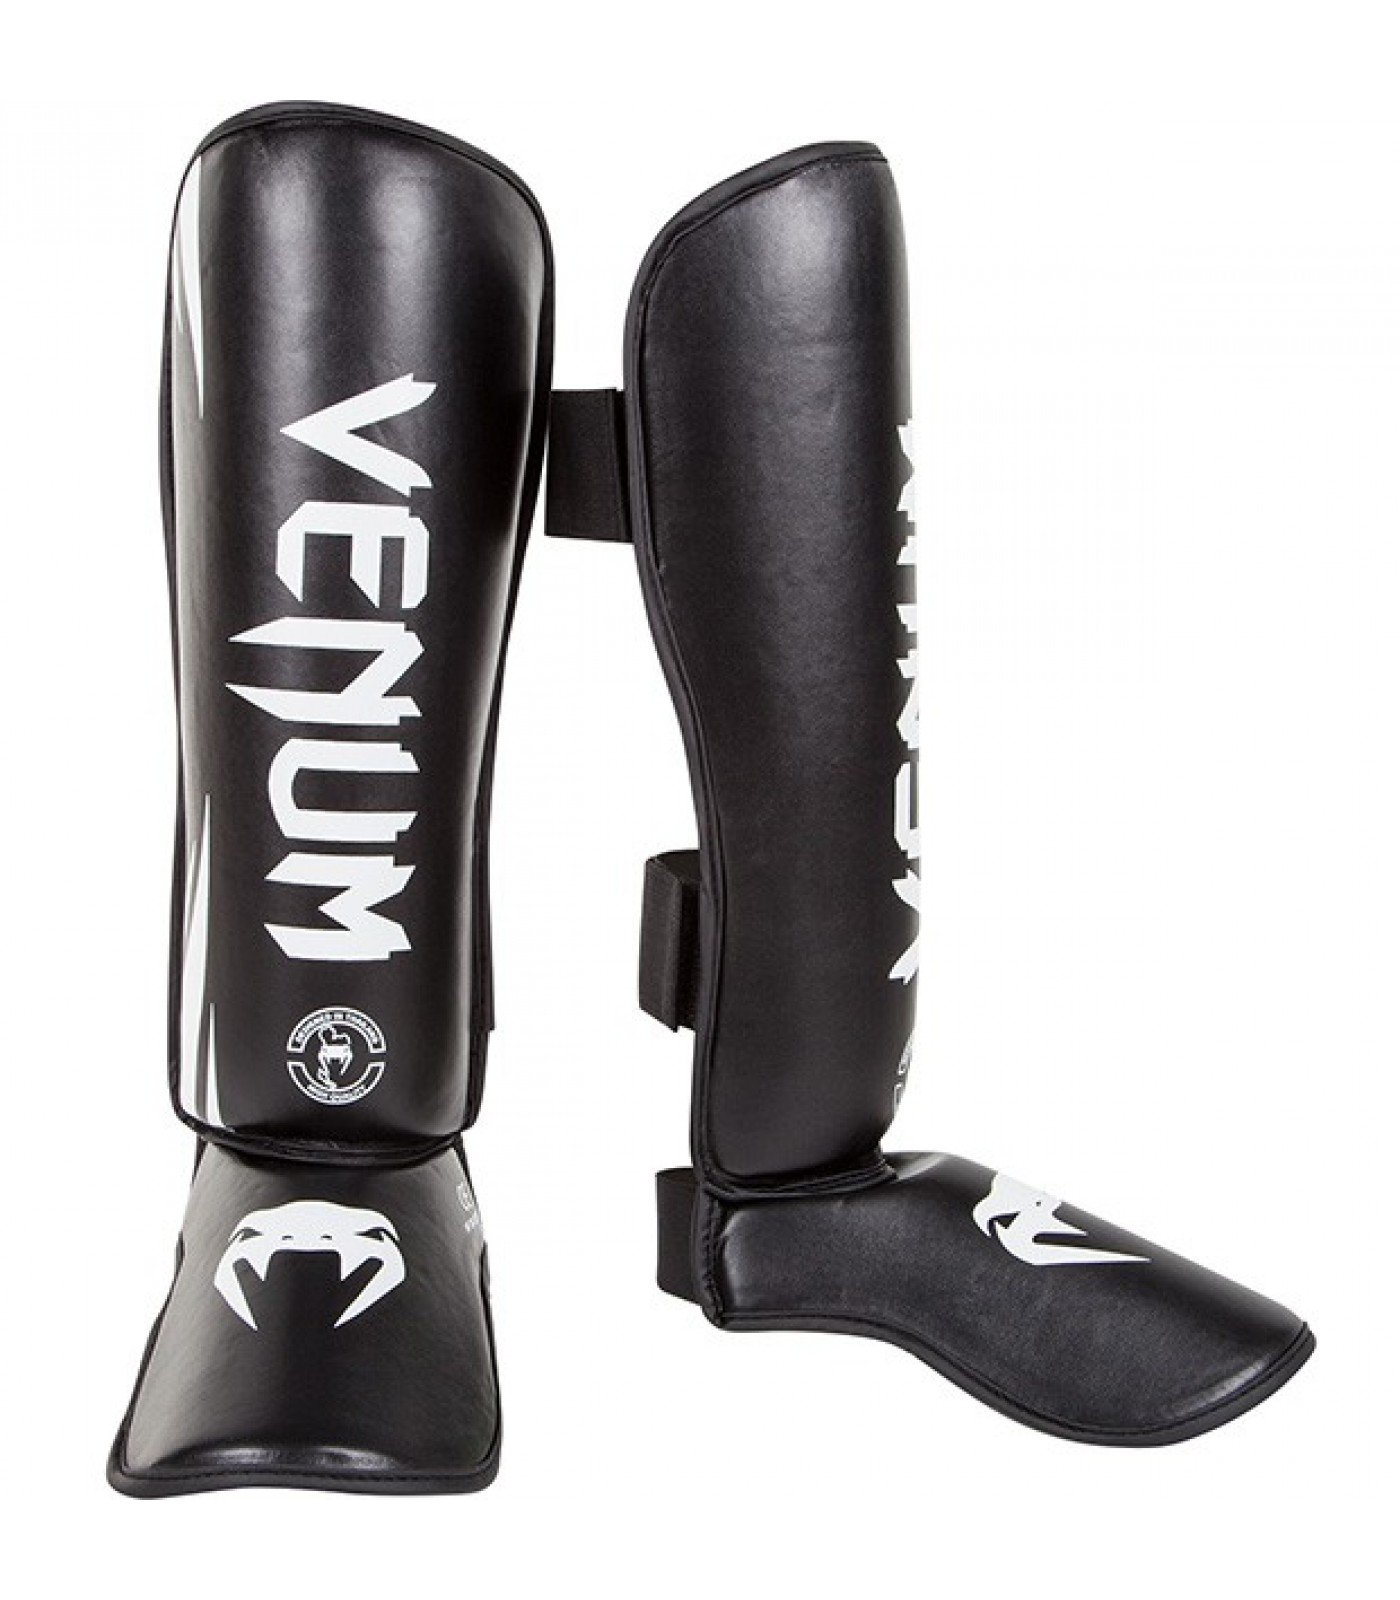 Протектори за крака - VENUM CHALLENGER STANDUP SHINGUARDS - BLACK​